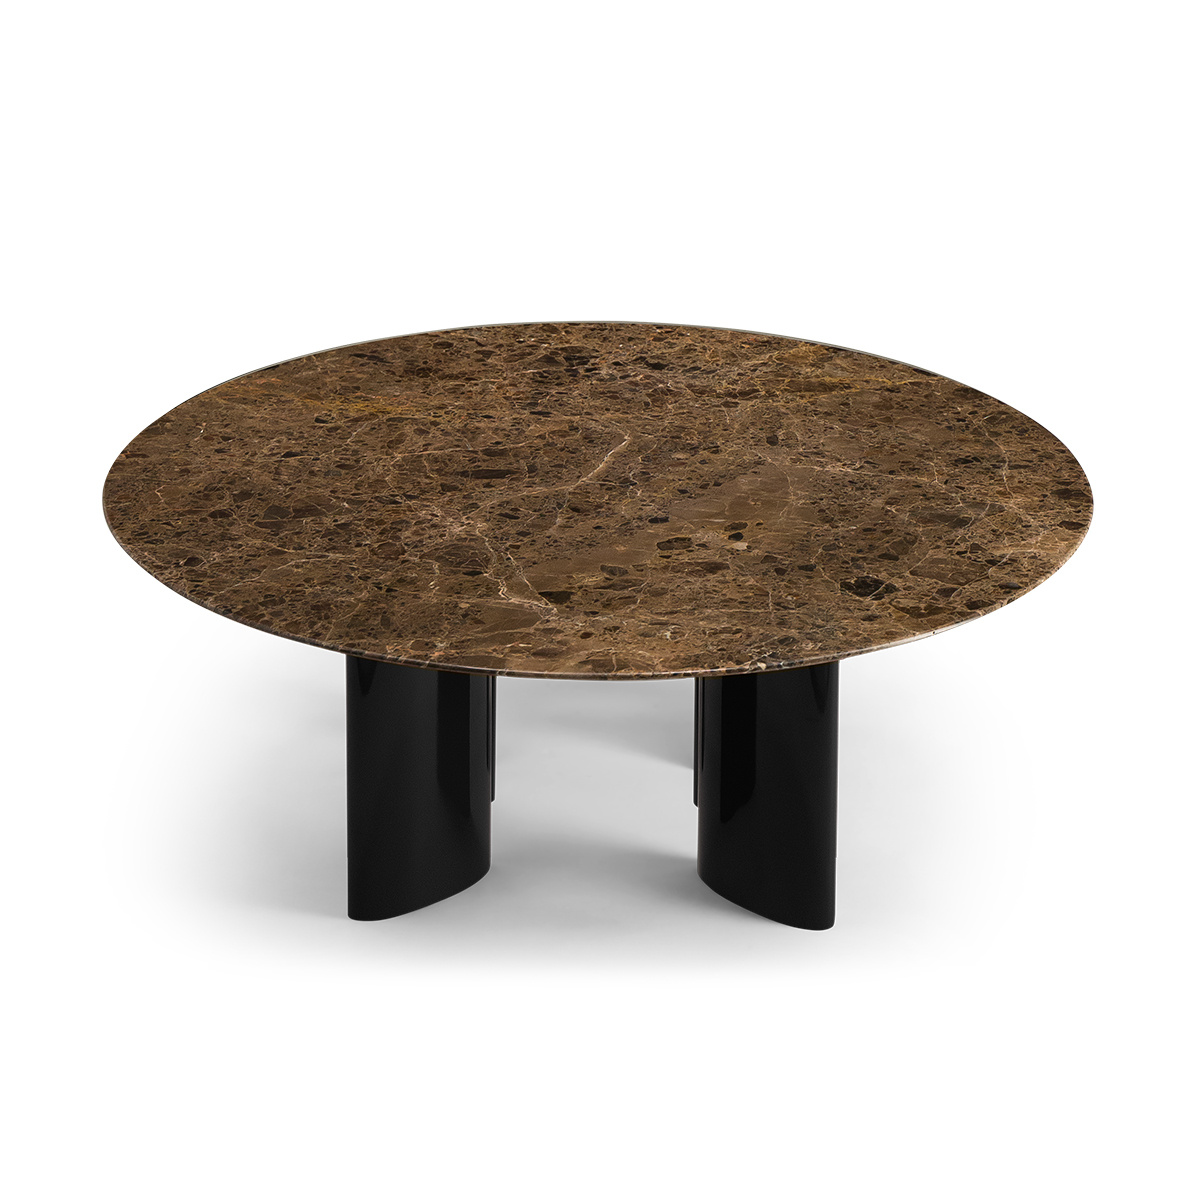 Carlotta Coffee Table, Brown Marble Top and Black Legs